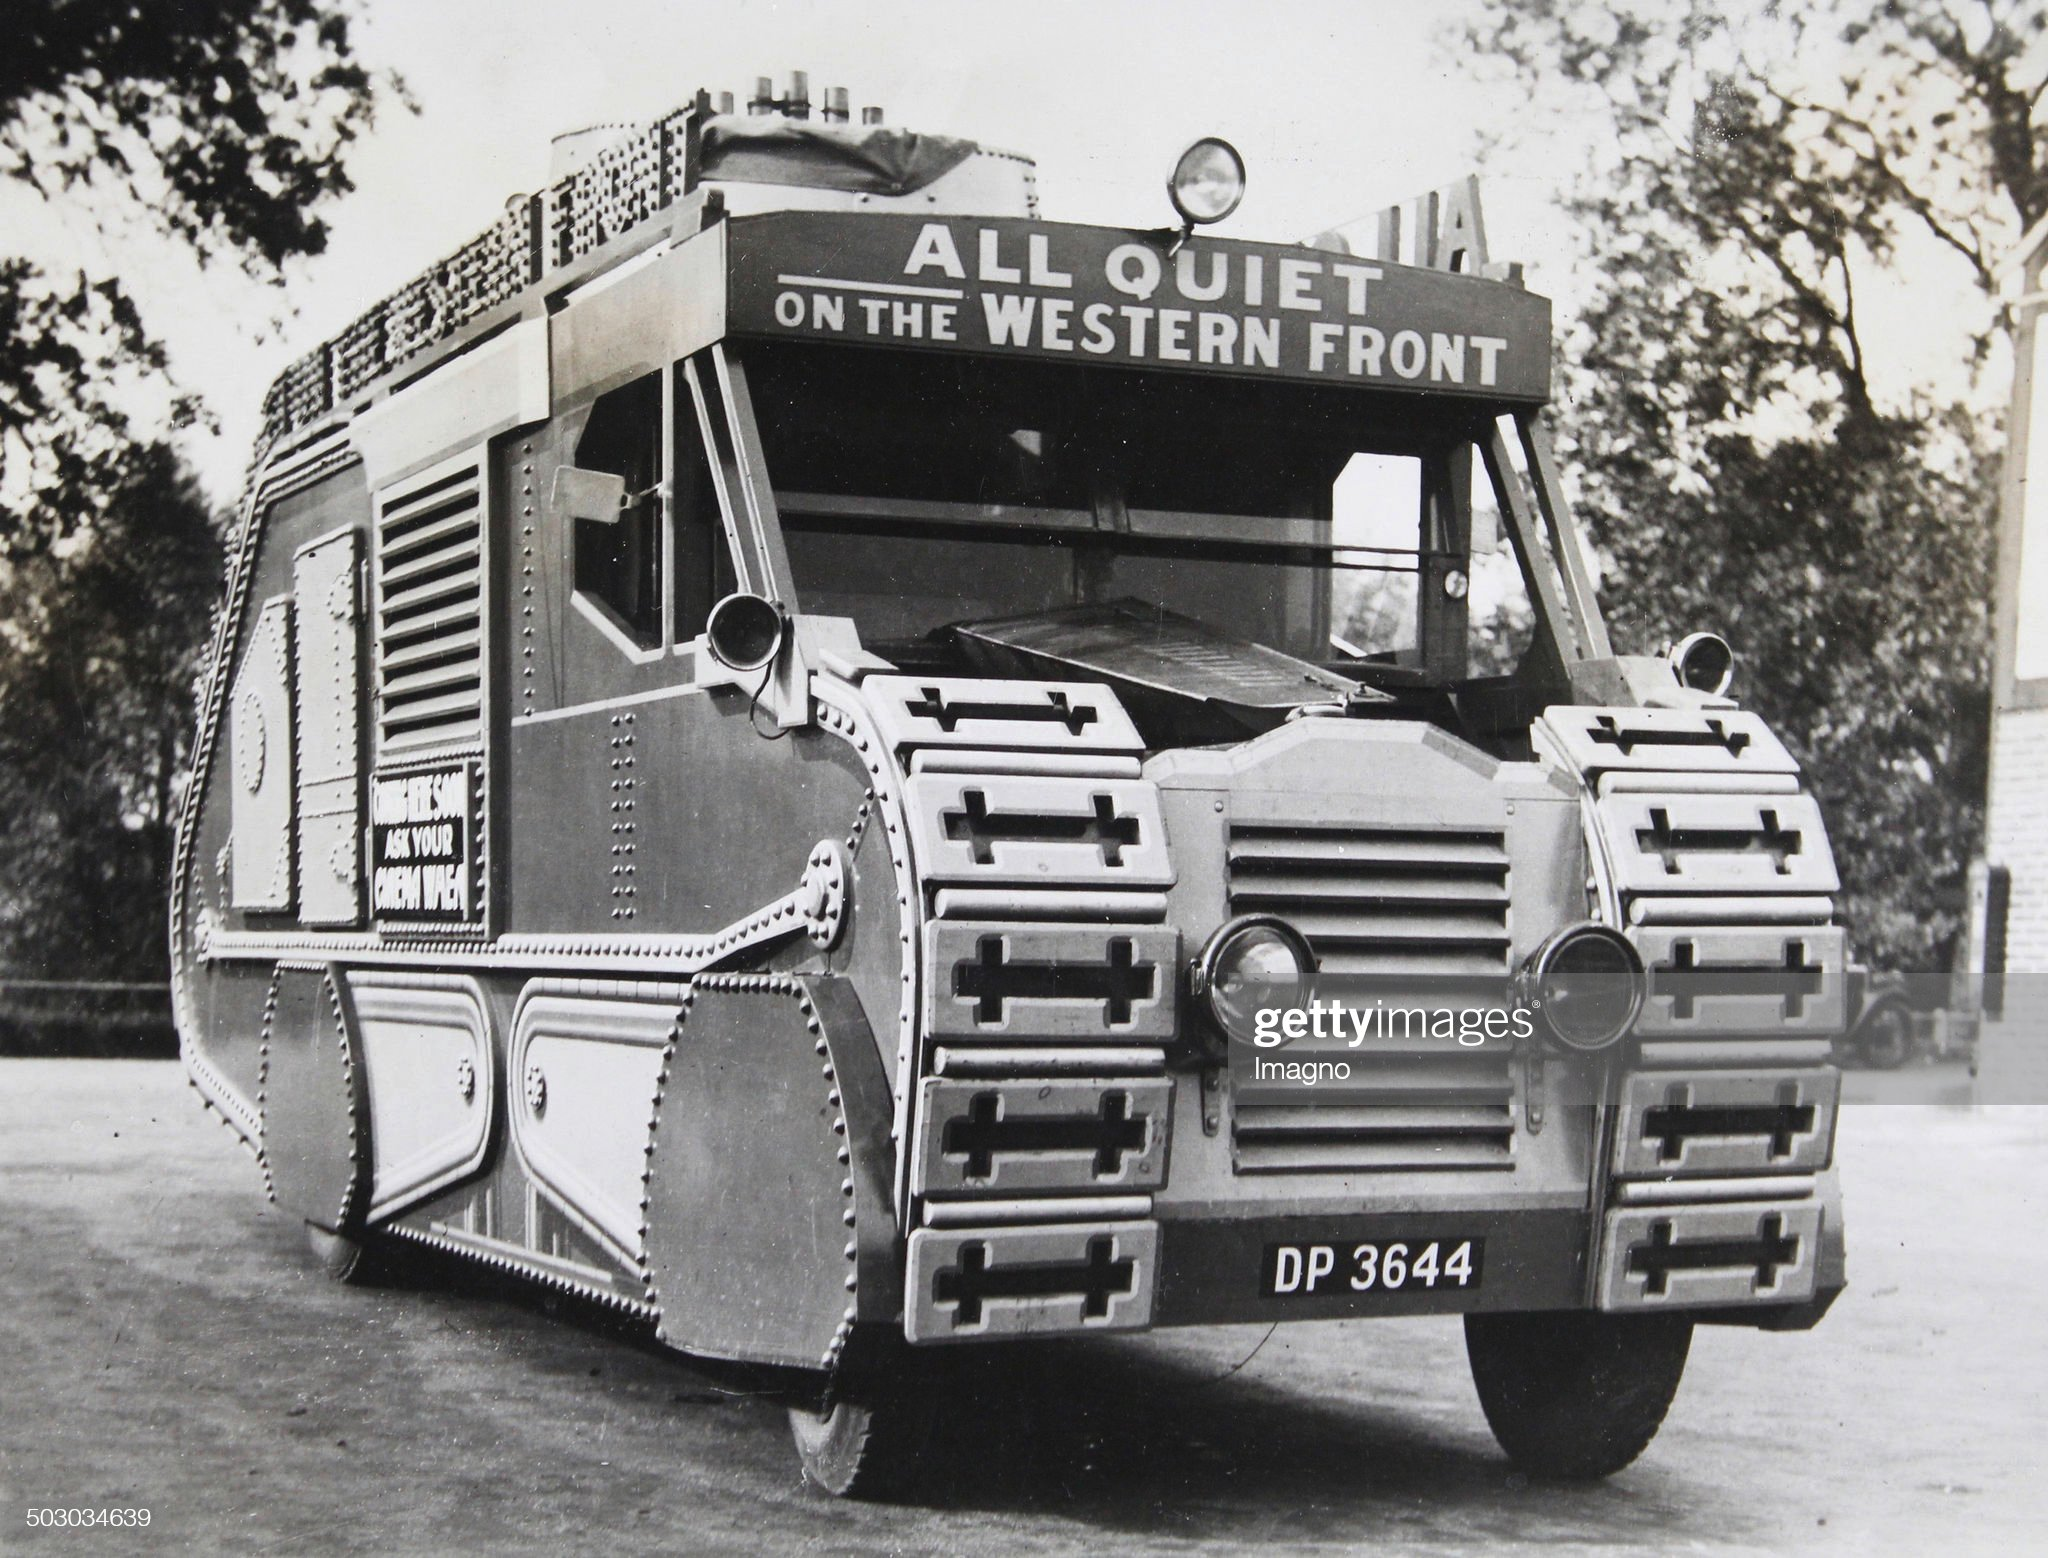 decorated-tank-truck-makes-in-nottingham